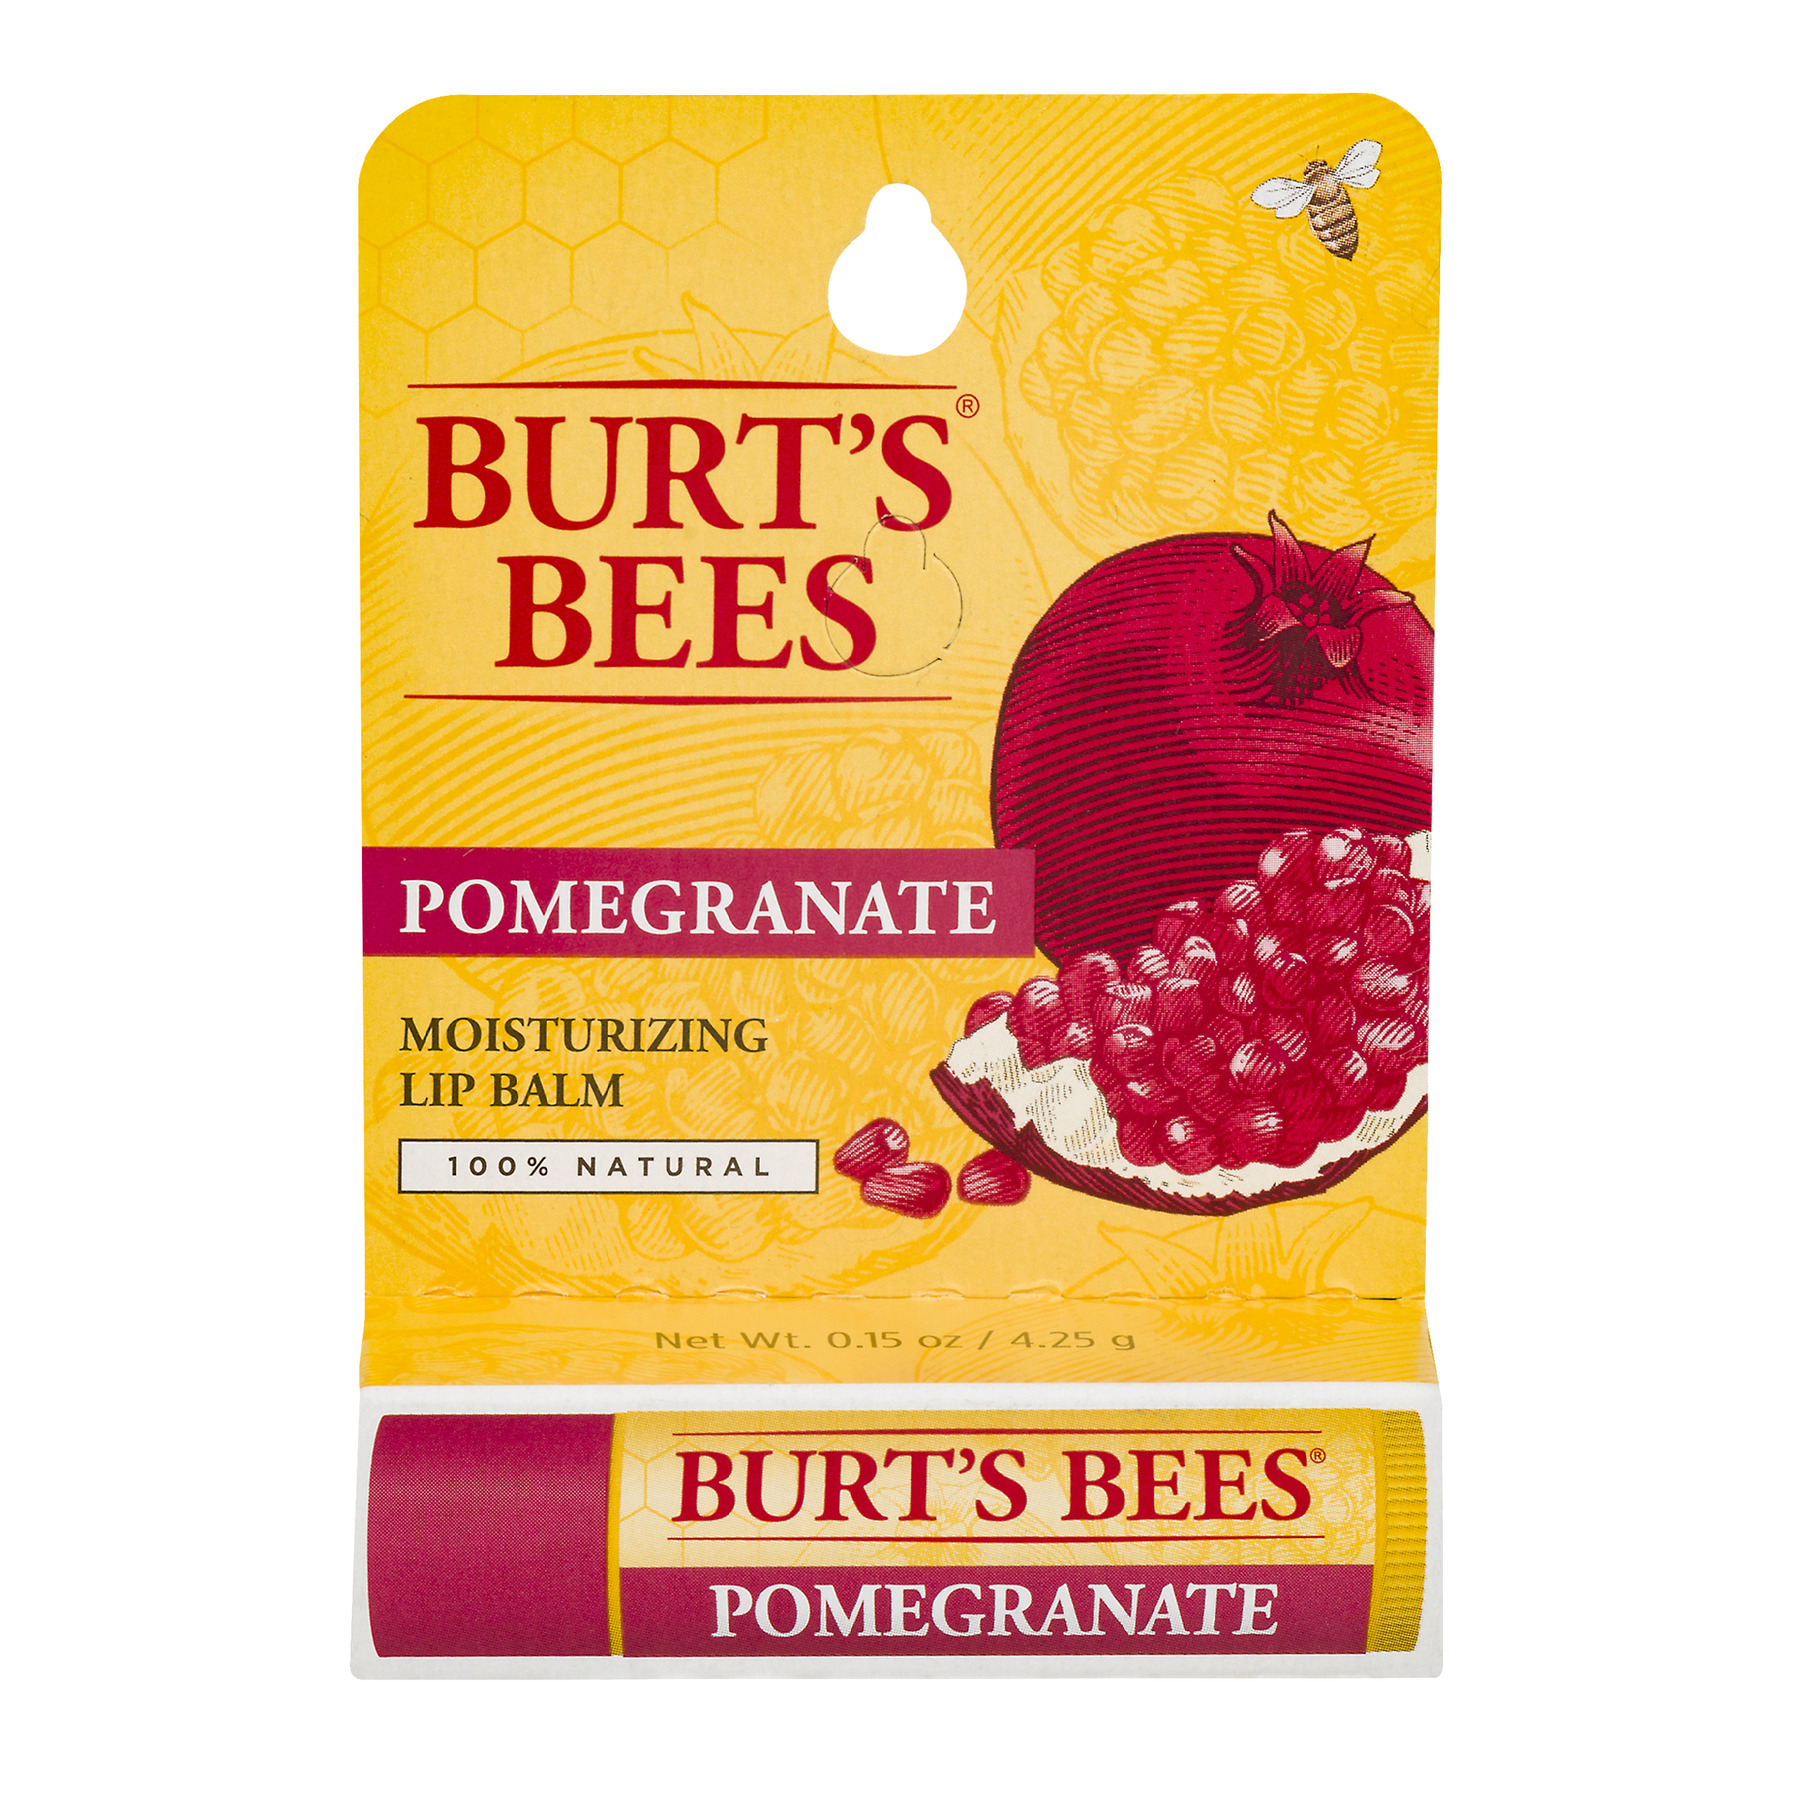 Burt's Bees 100% Natural Moisturizing Lip Balm, Pomegranate with Beeswax and Fruit Extracts - 1 Tube